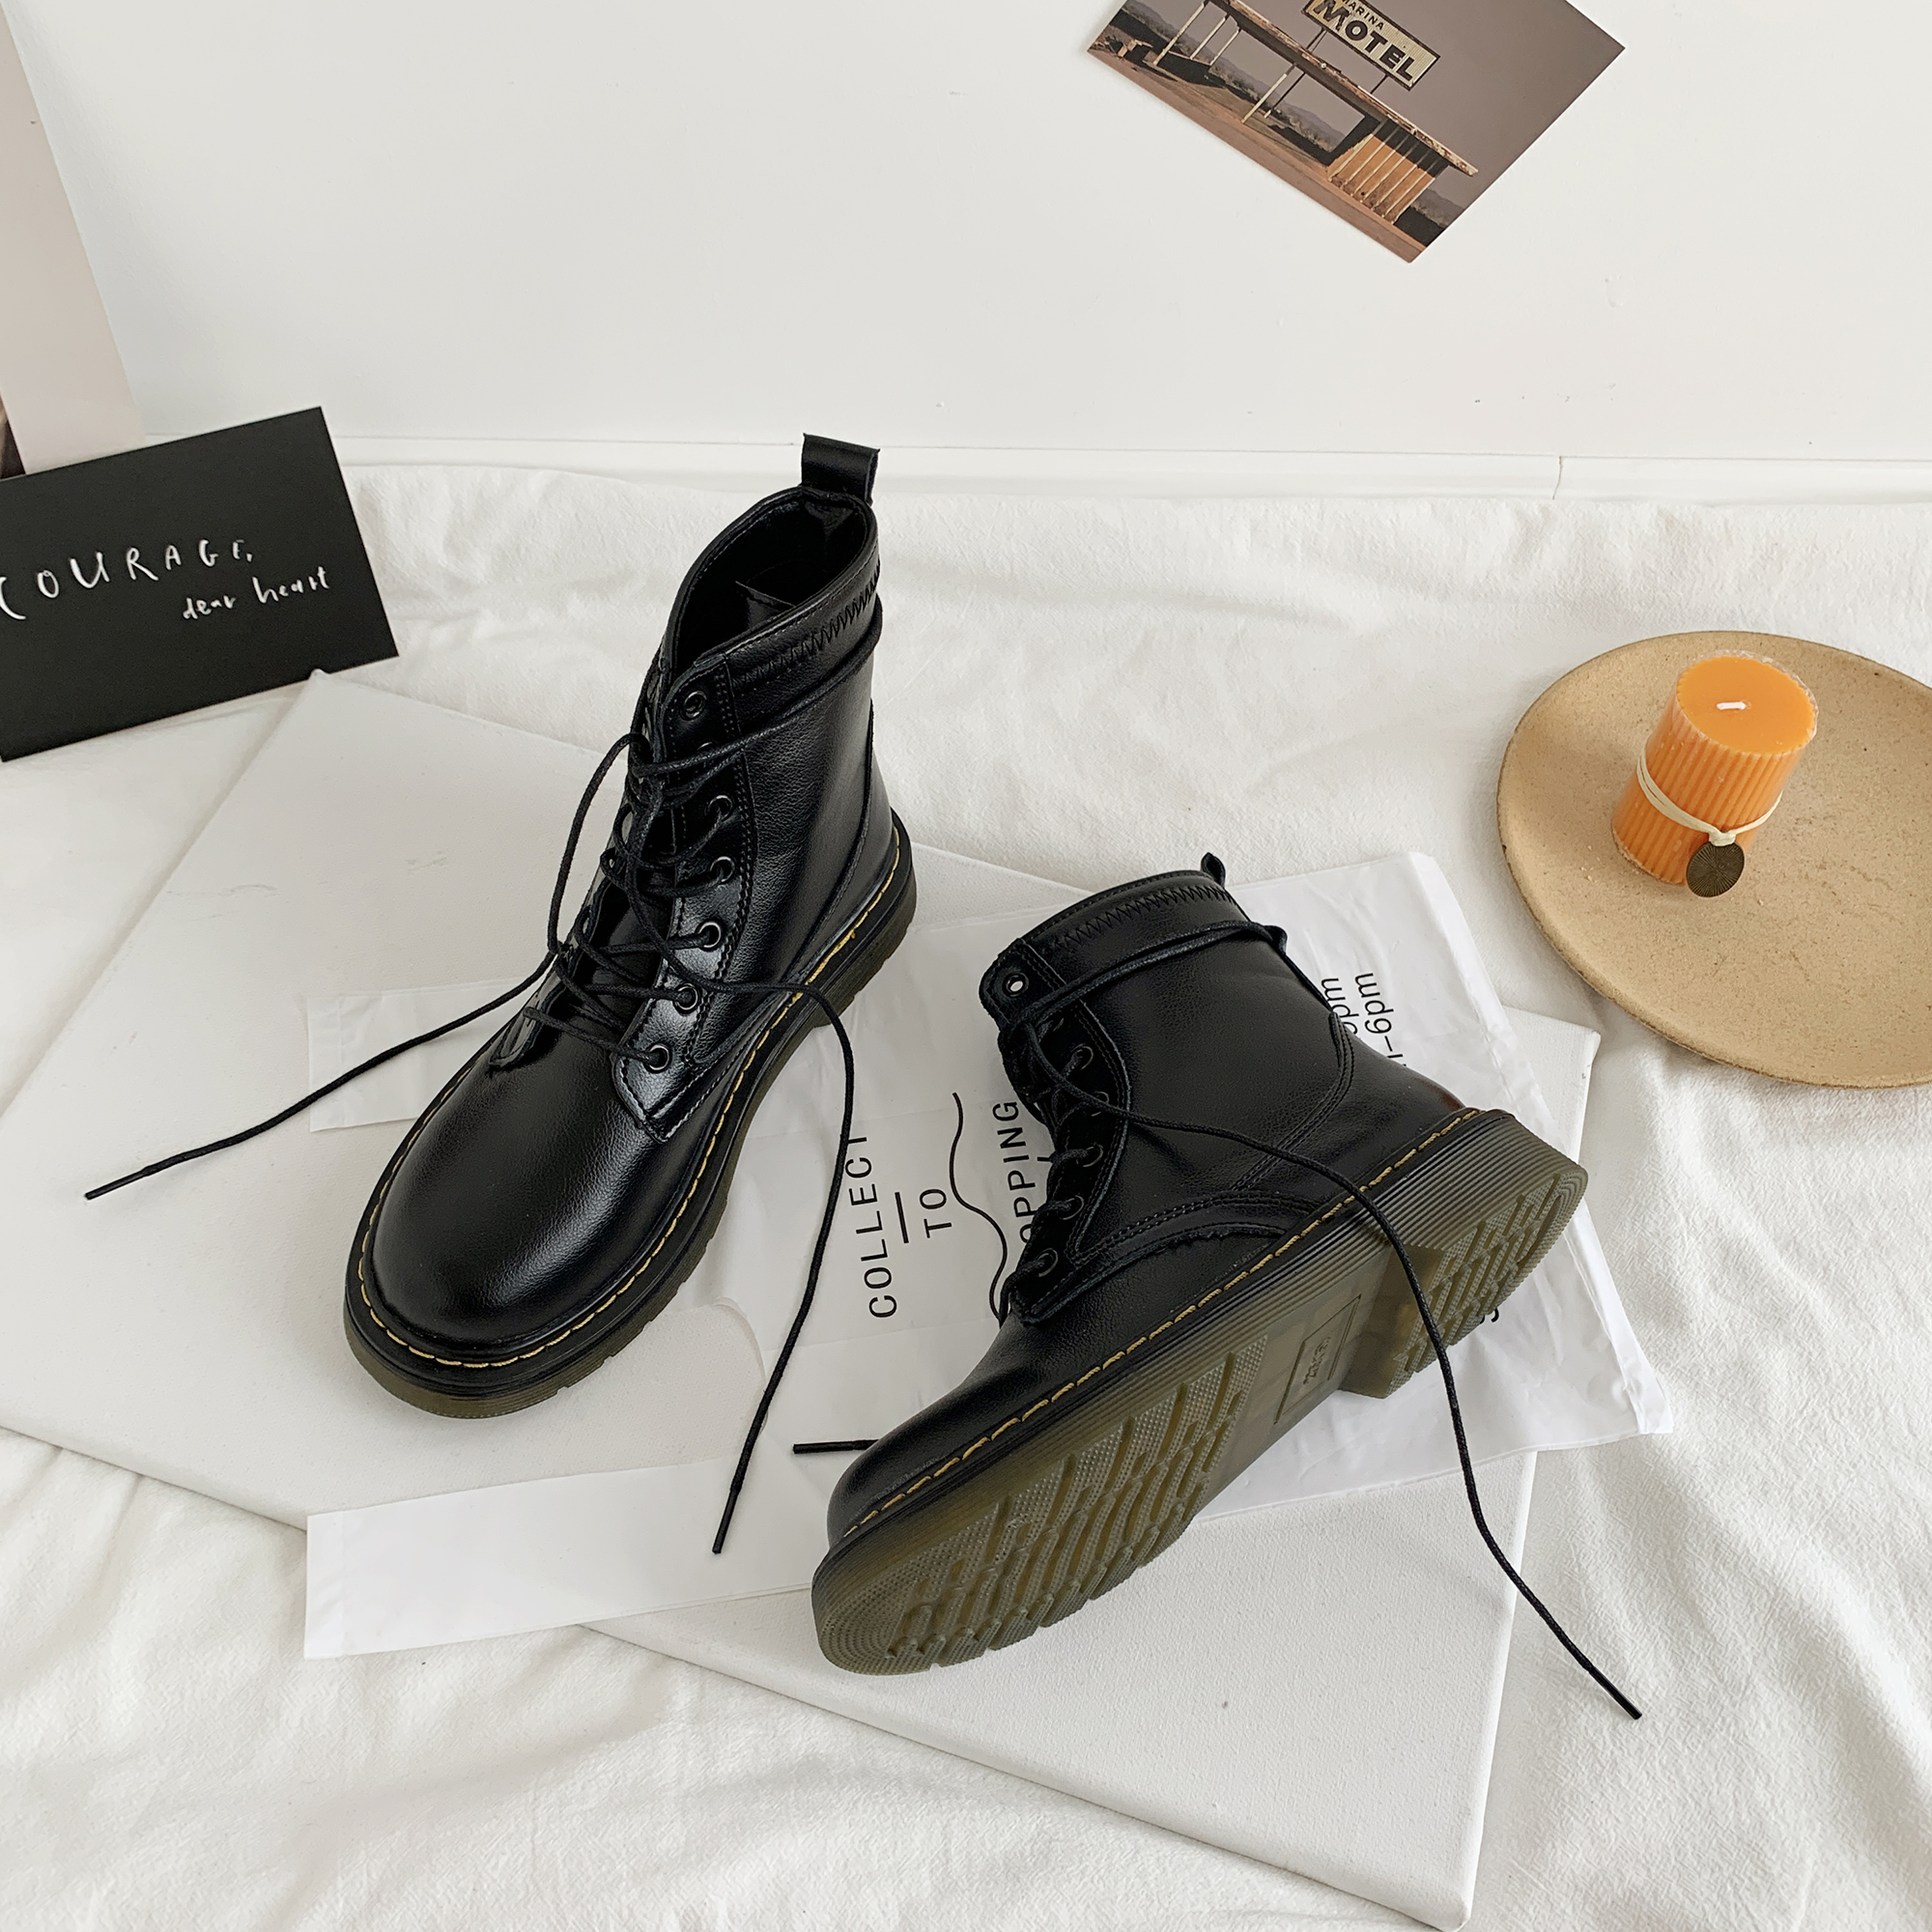 2020 new spring and autumn versatile British style thick bottom breathable locomotive lace up short boots show feet small and thin Martin boots